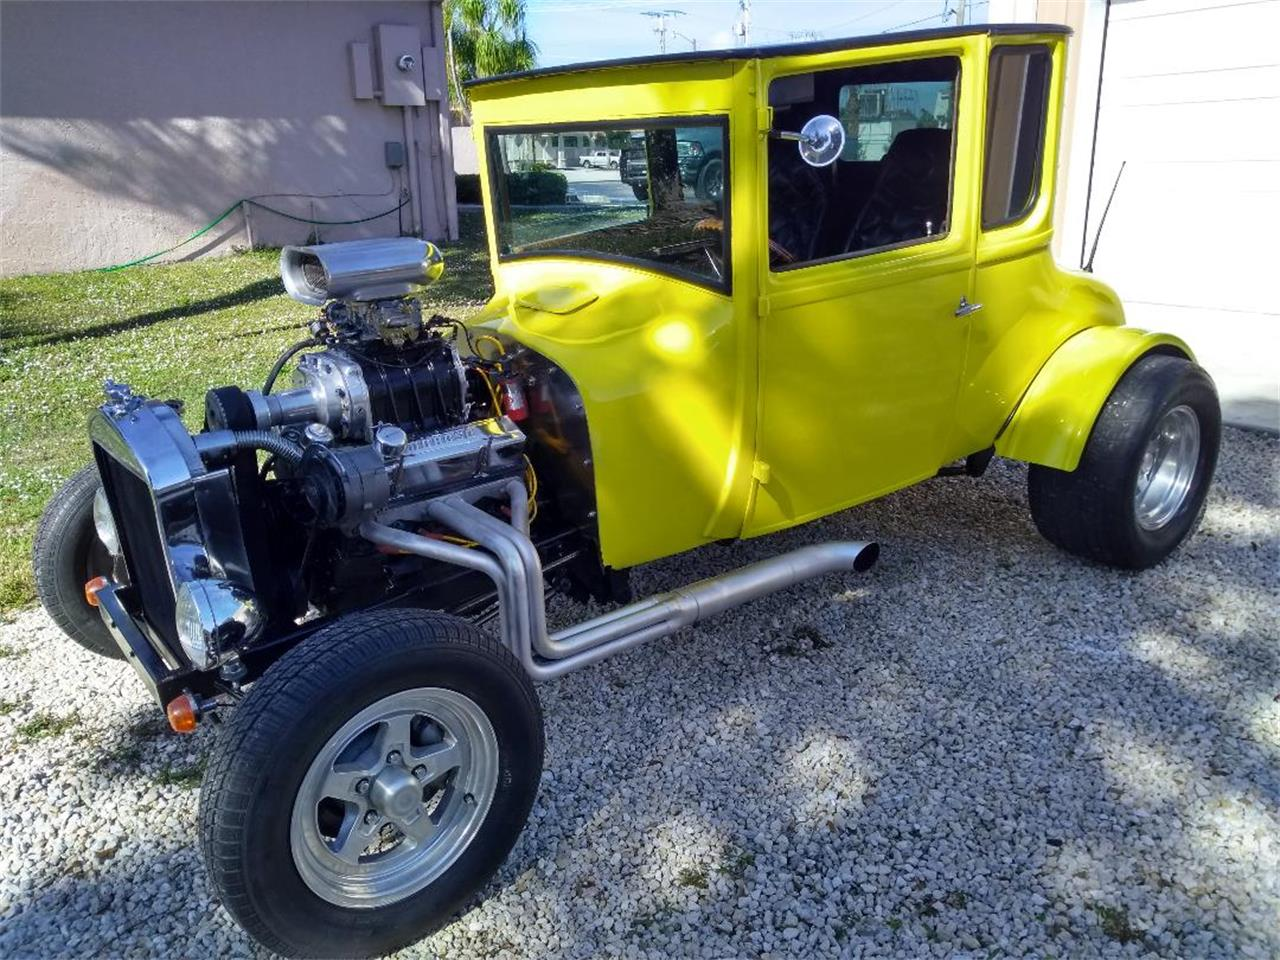 Large Picture of 1927 Ford Model T located in Florida - $19,900.00 Offered by a Private Seller - Q2T6